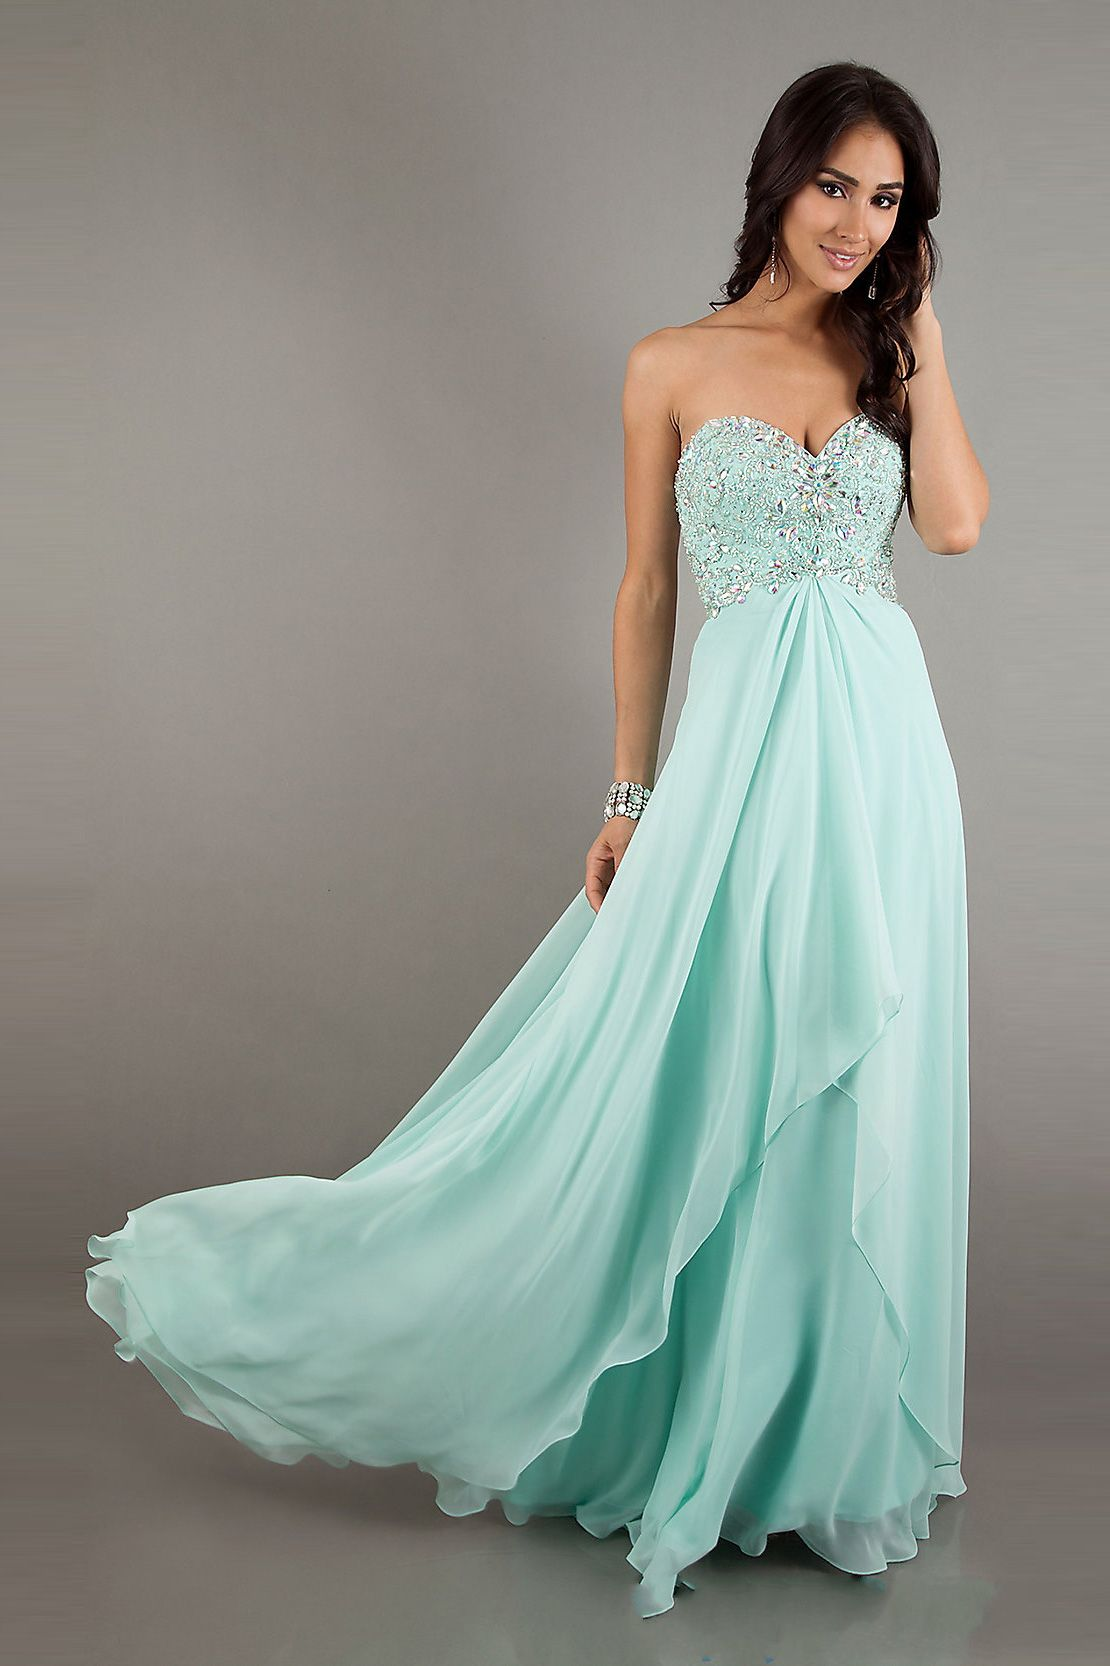 Tween dresses strapless long | Beach Sweetheart Long Chiffon ...